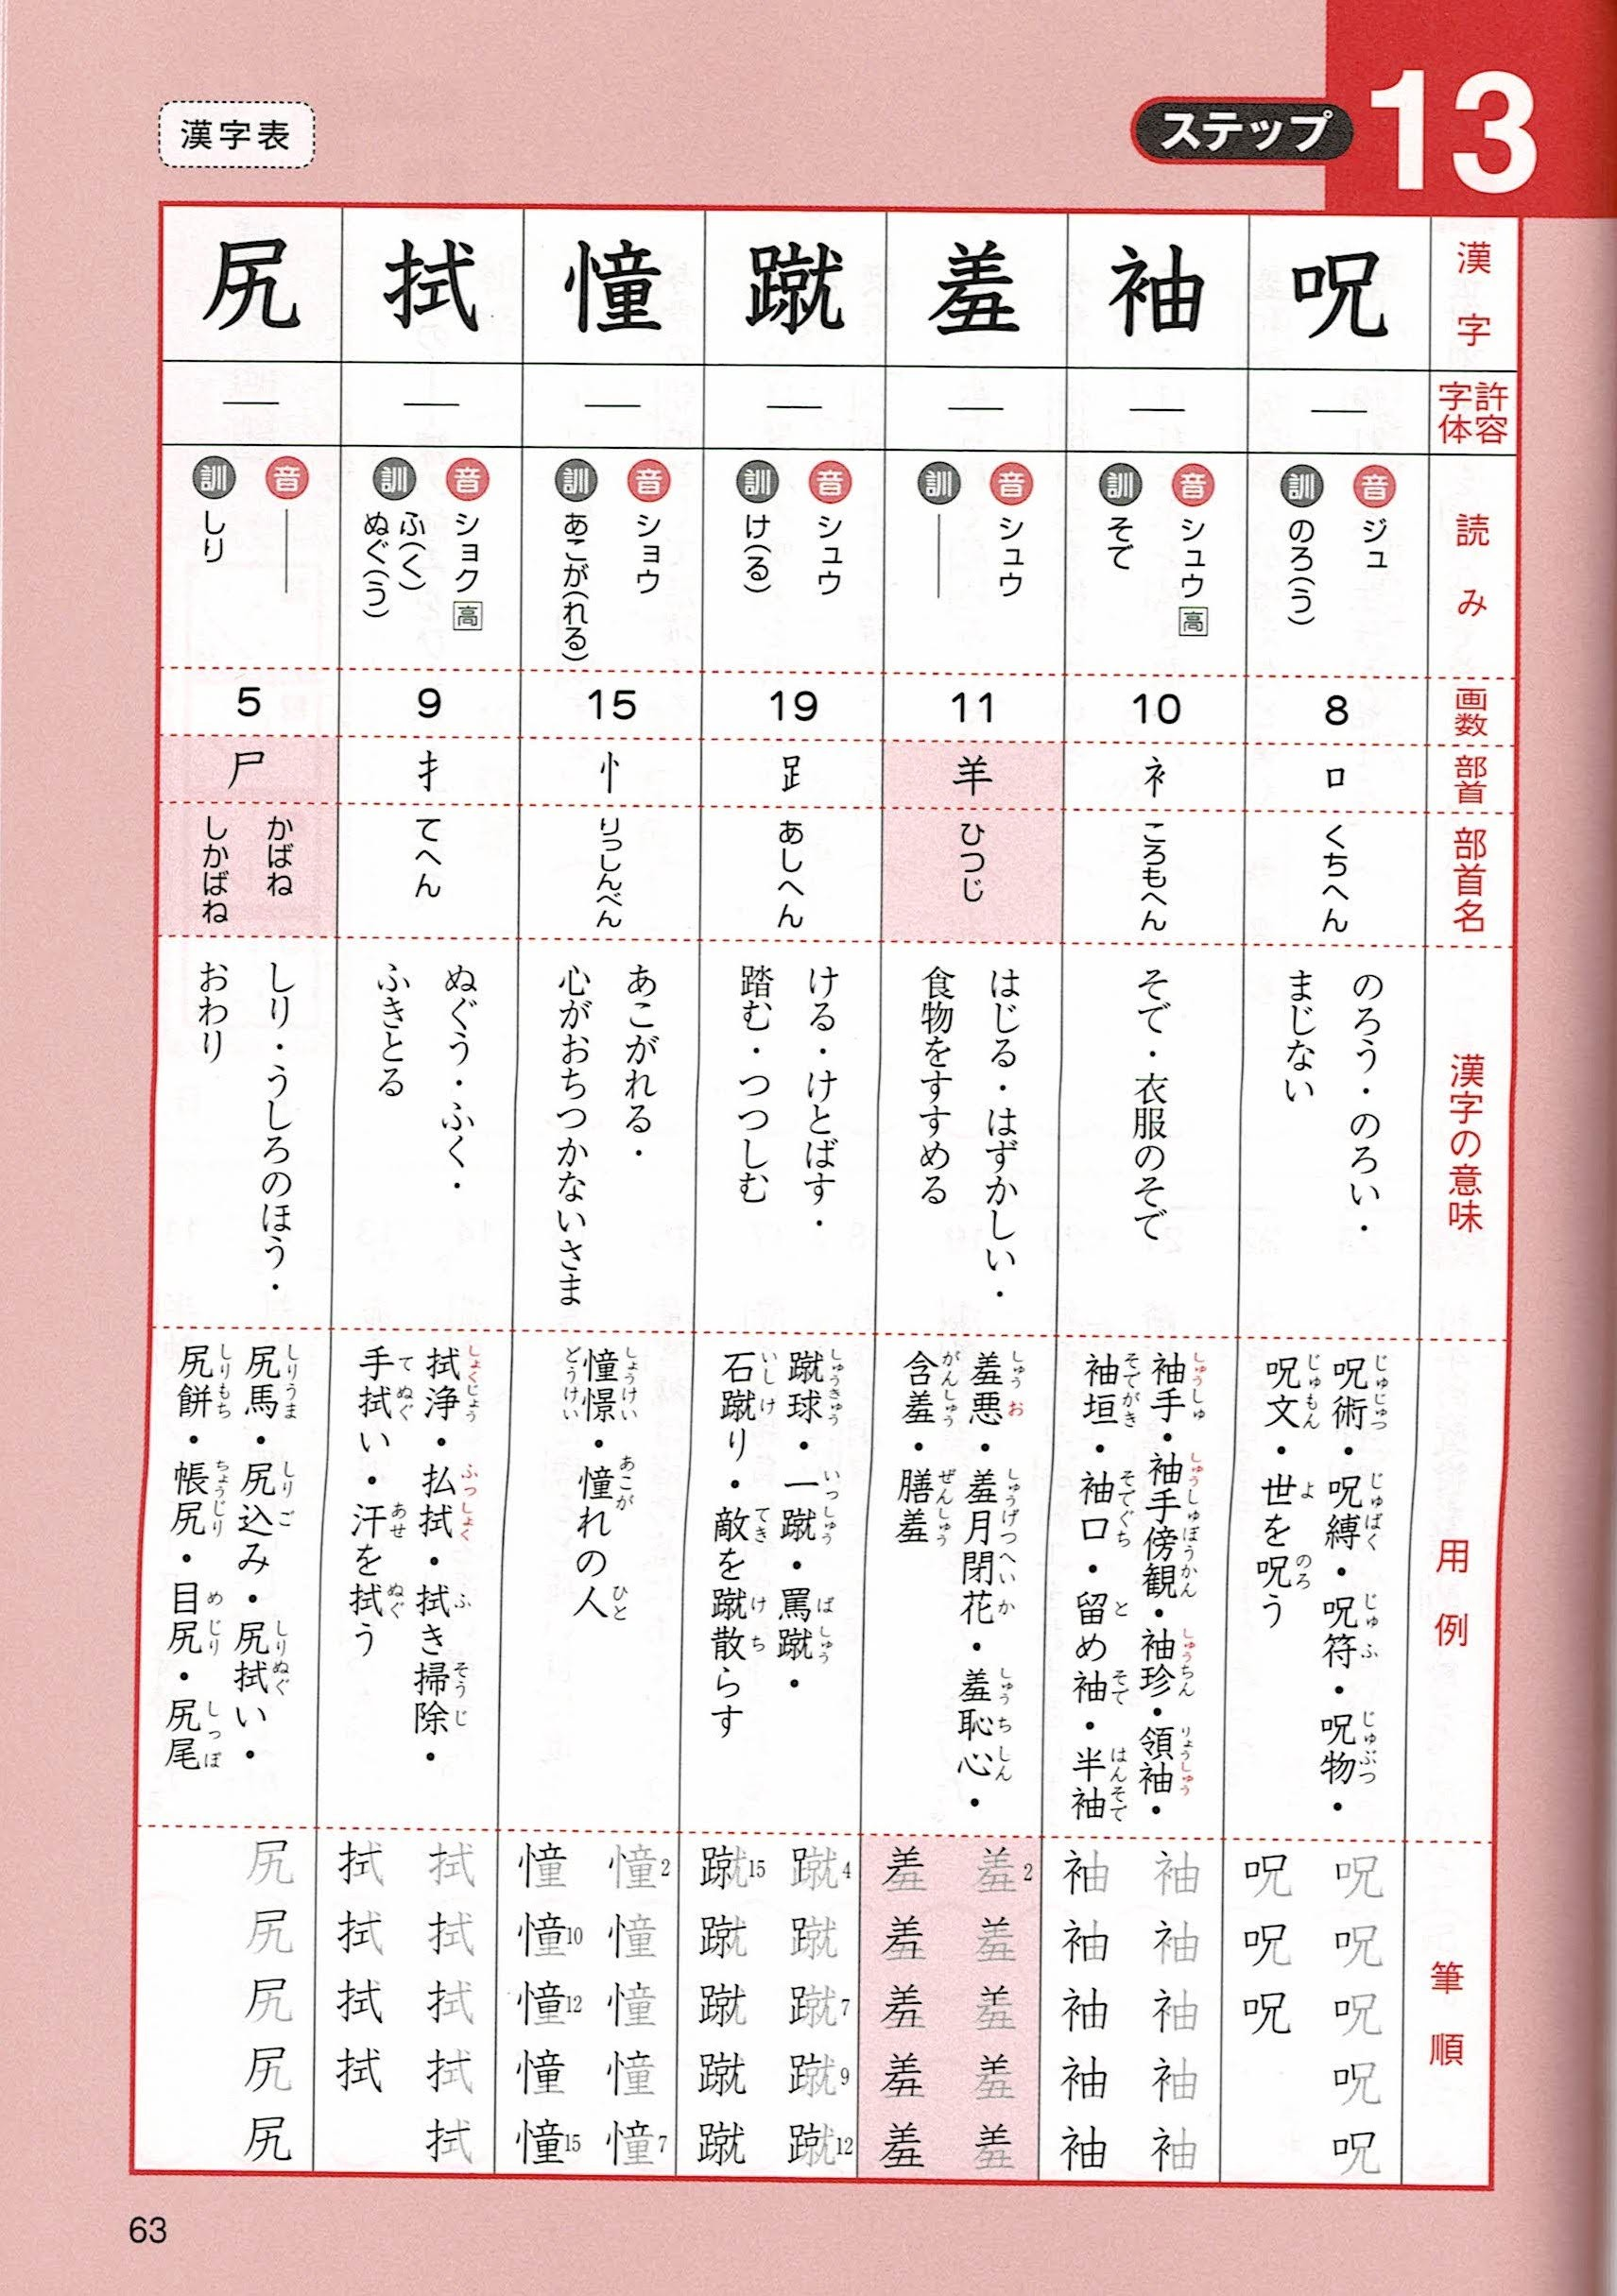 A sample page from the Kanken book which consists of 7 Chinese characters and dictionary-like details about them.